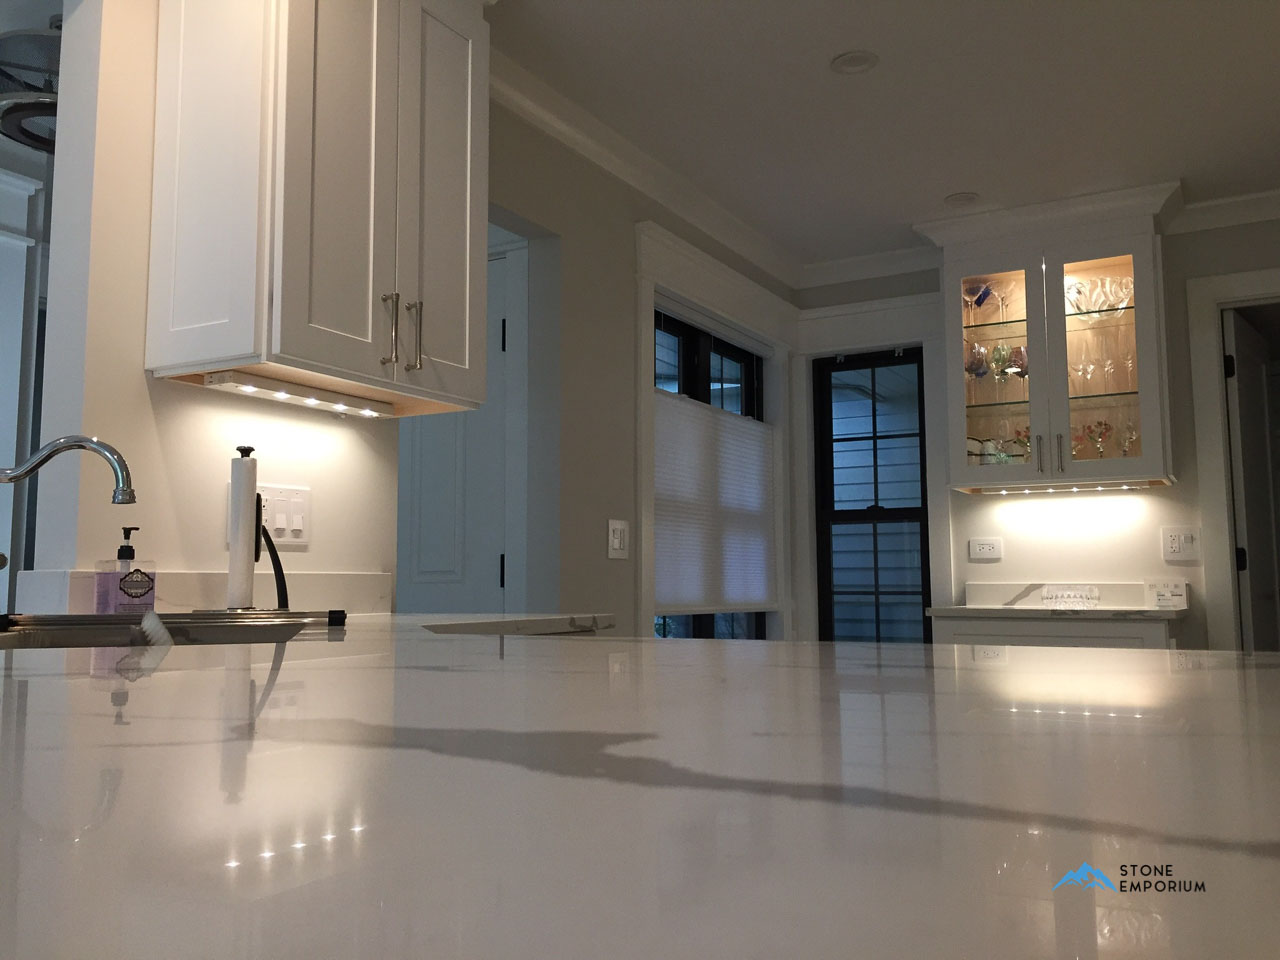 How To Clean Quartz Countertops Stone Emporium Quartz